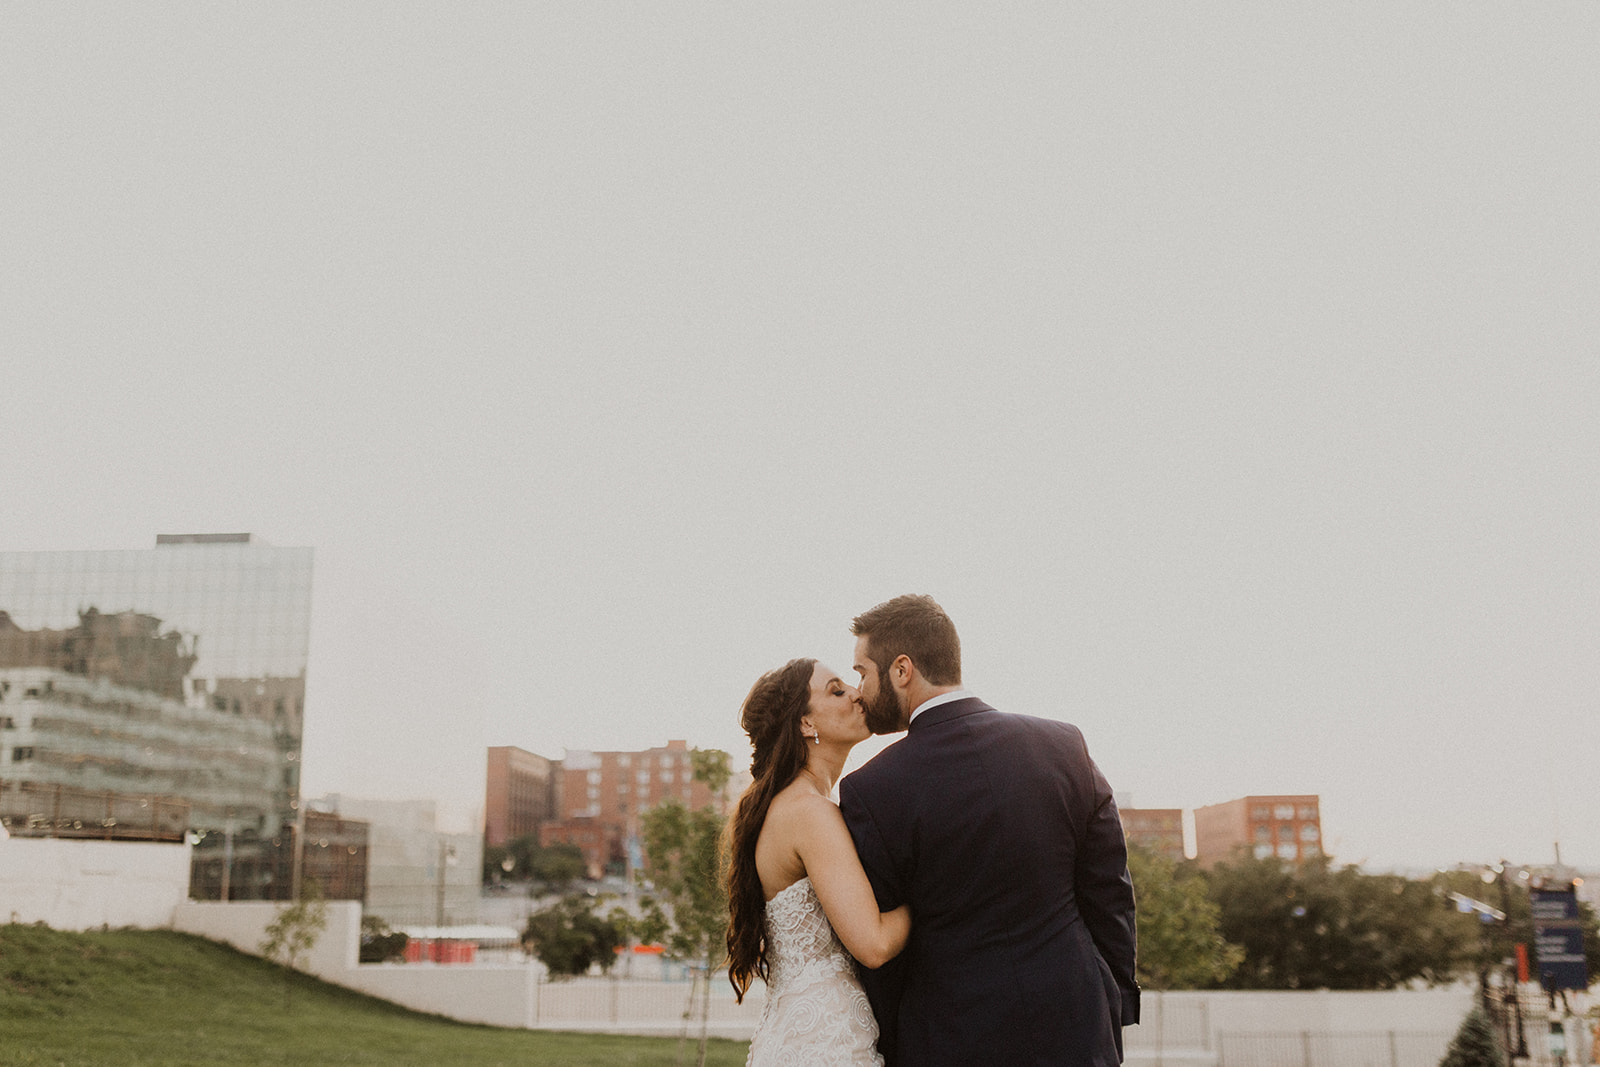 Wedding Day Photo Inspiration